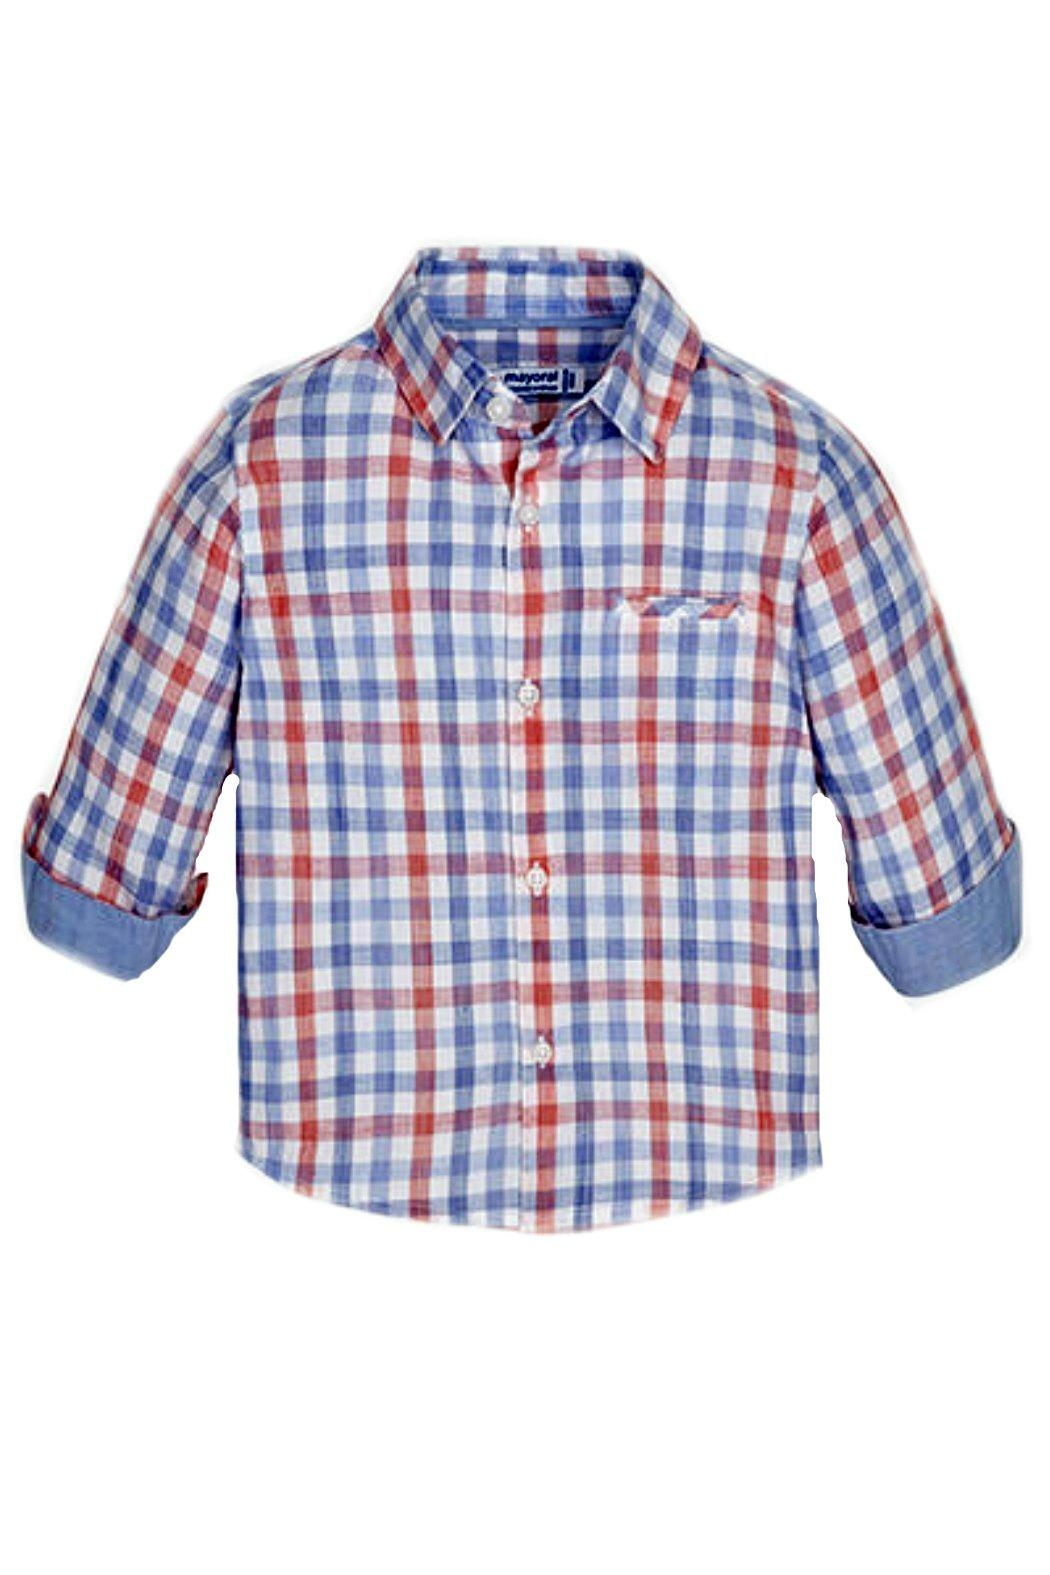 Mayoral Baby-Boy Long-Sleeve-Checked Shirt - Front Cropped Image